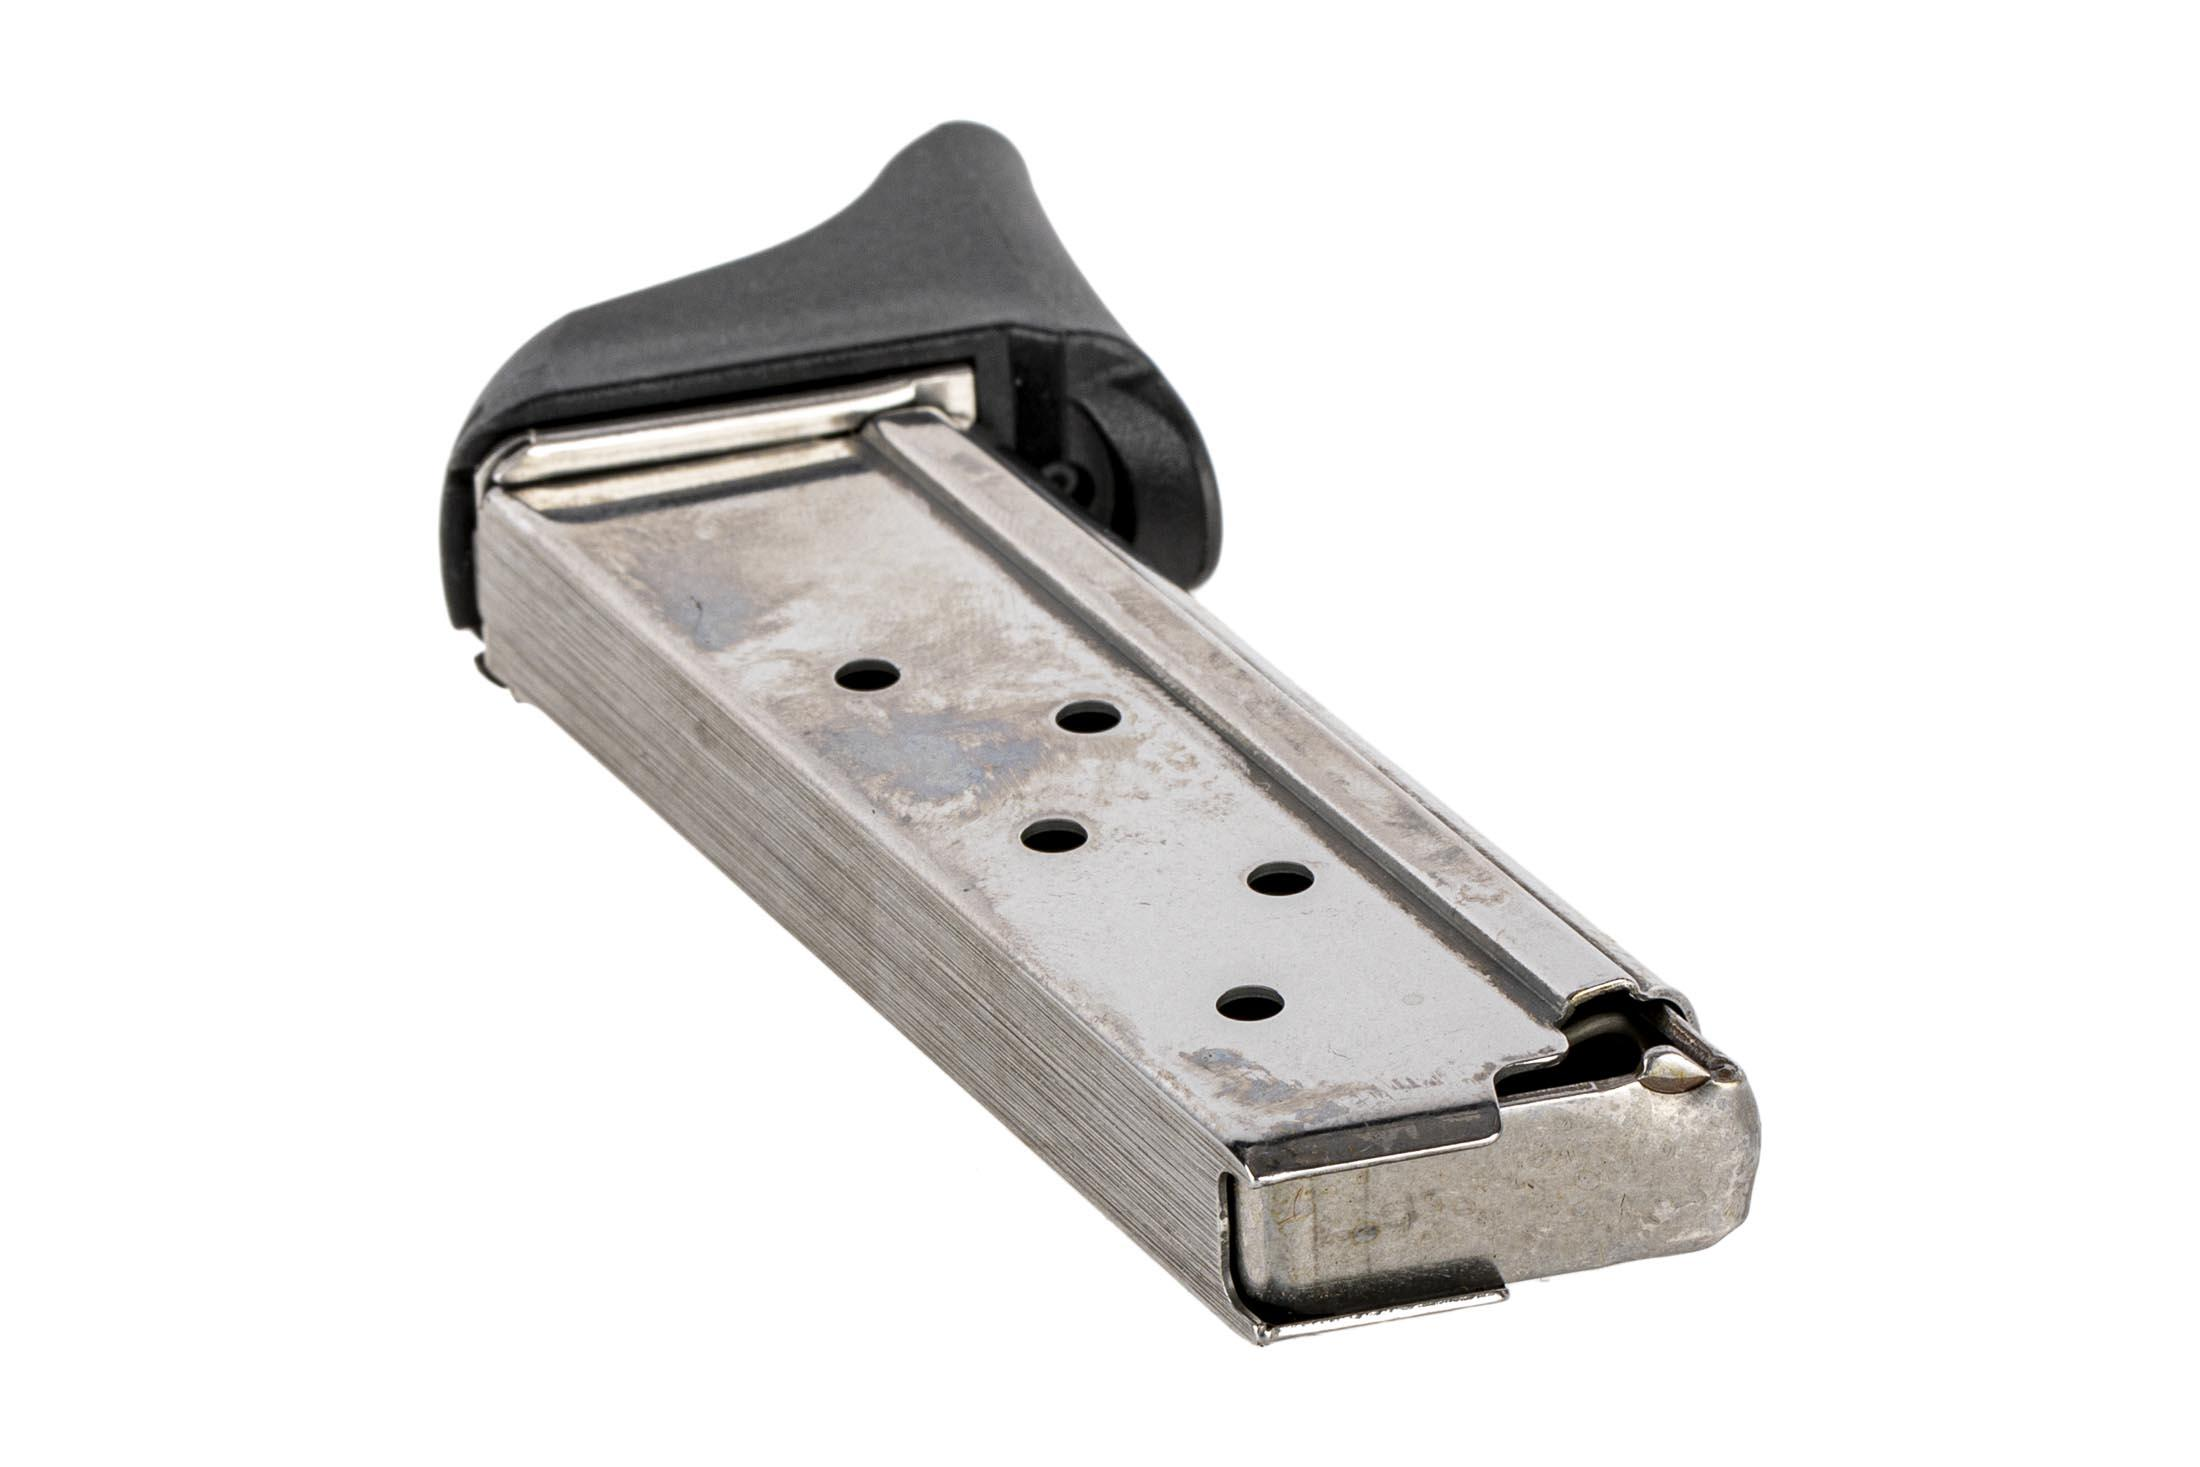 The Beretta Pico 6 round magazine with finger extension is made from stainless steel